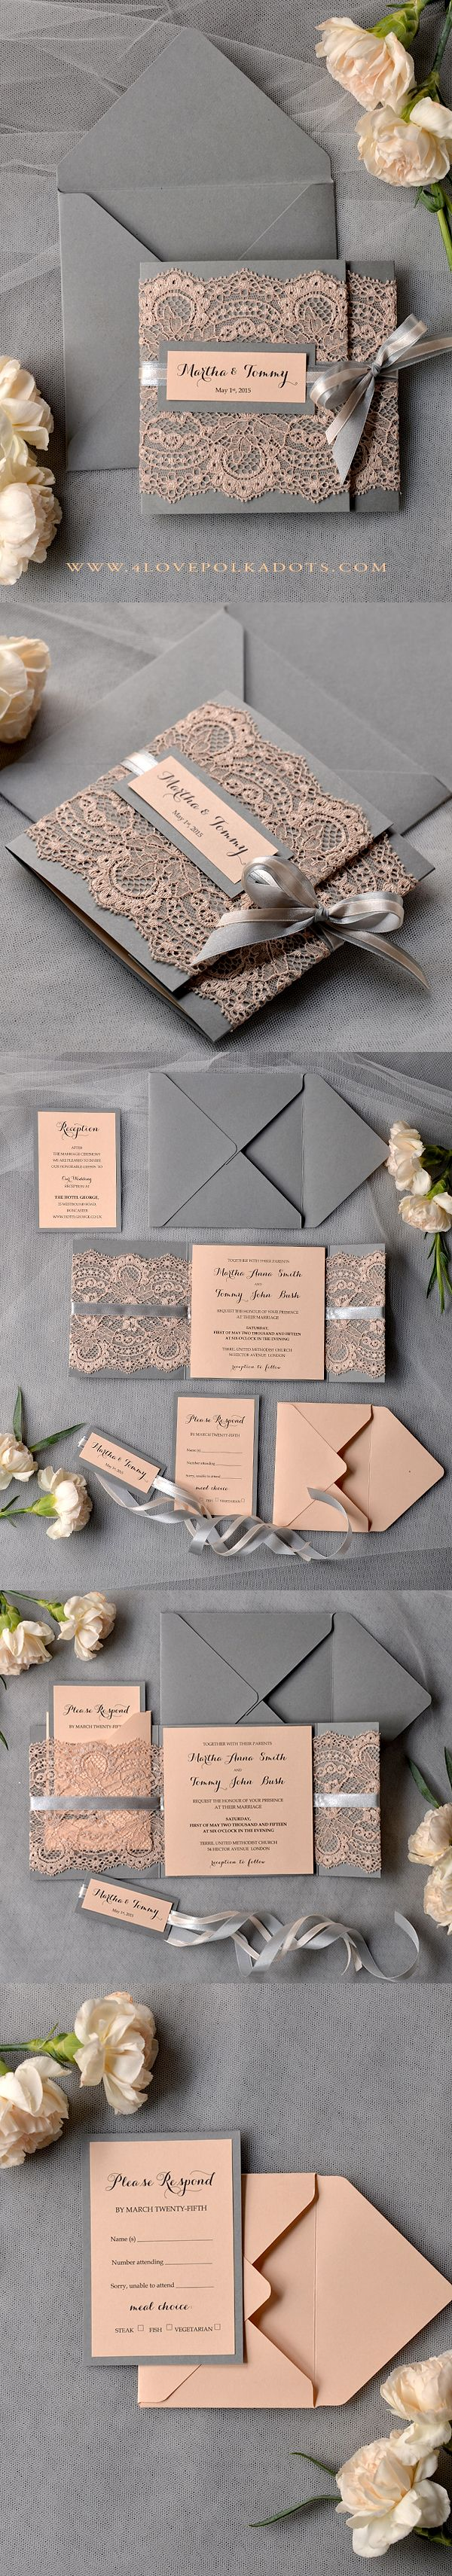 diamond wedding invitations%0A Peach  u     Grey Lace Wedding Invitations  perfectwedding  weddingideas  lace u